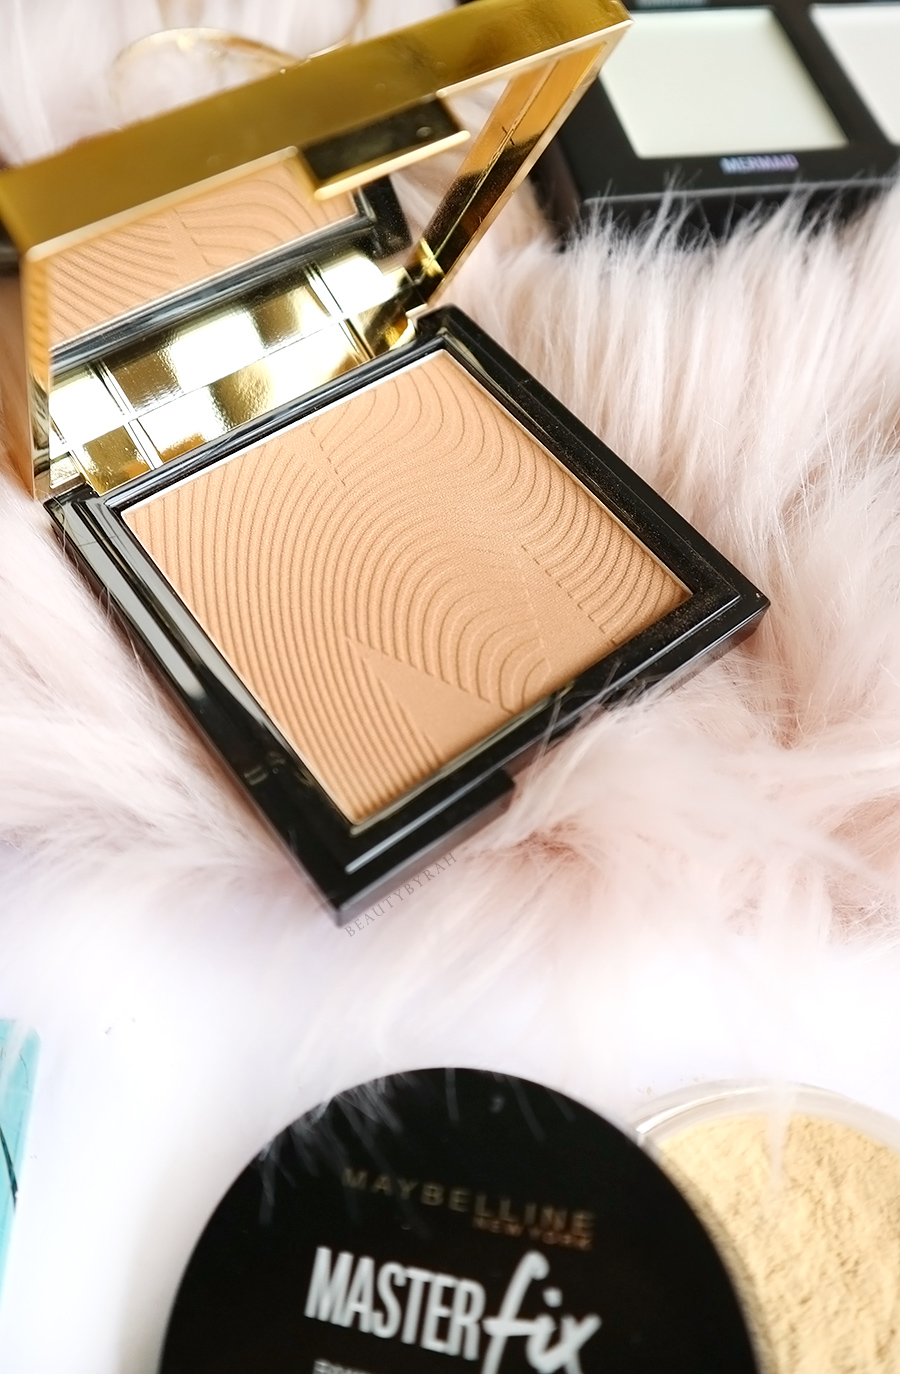 Mecca Max Sunlit Skin Bronzing Powder in Medium Review